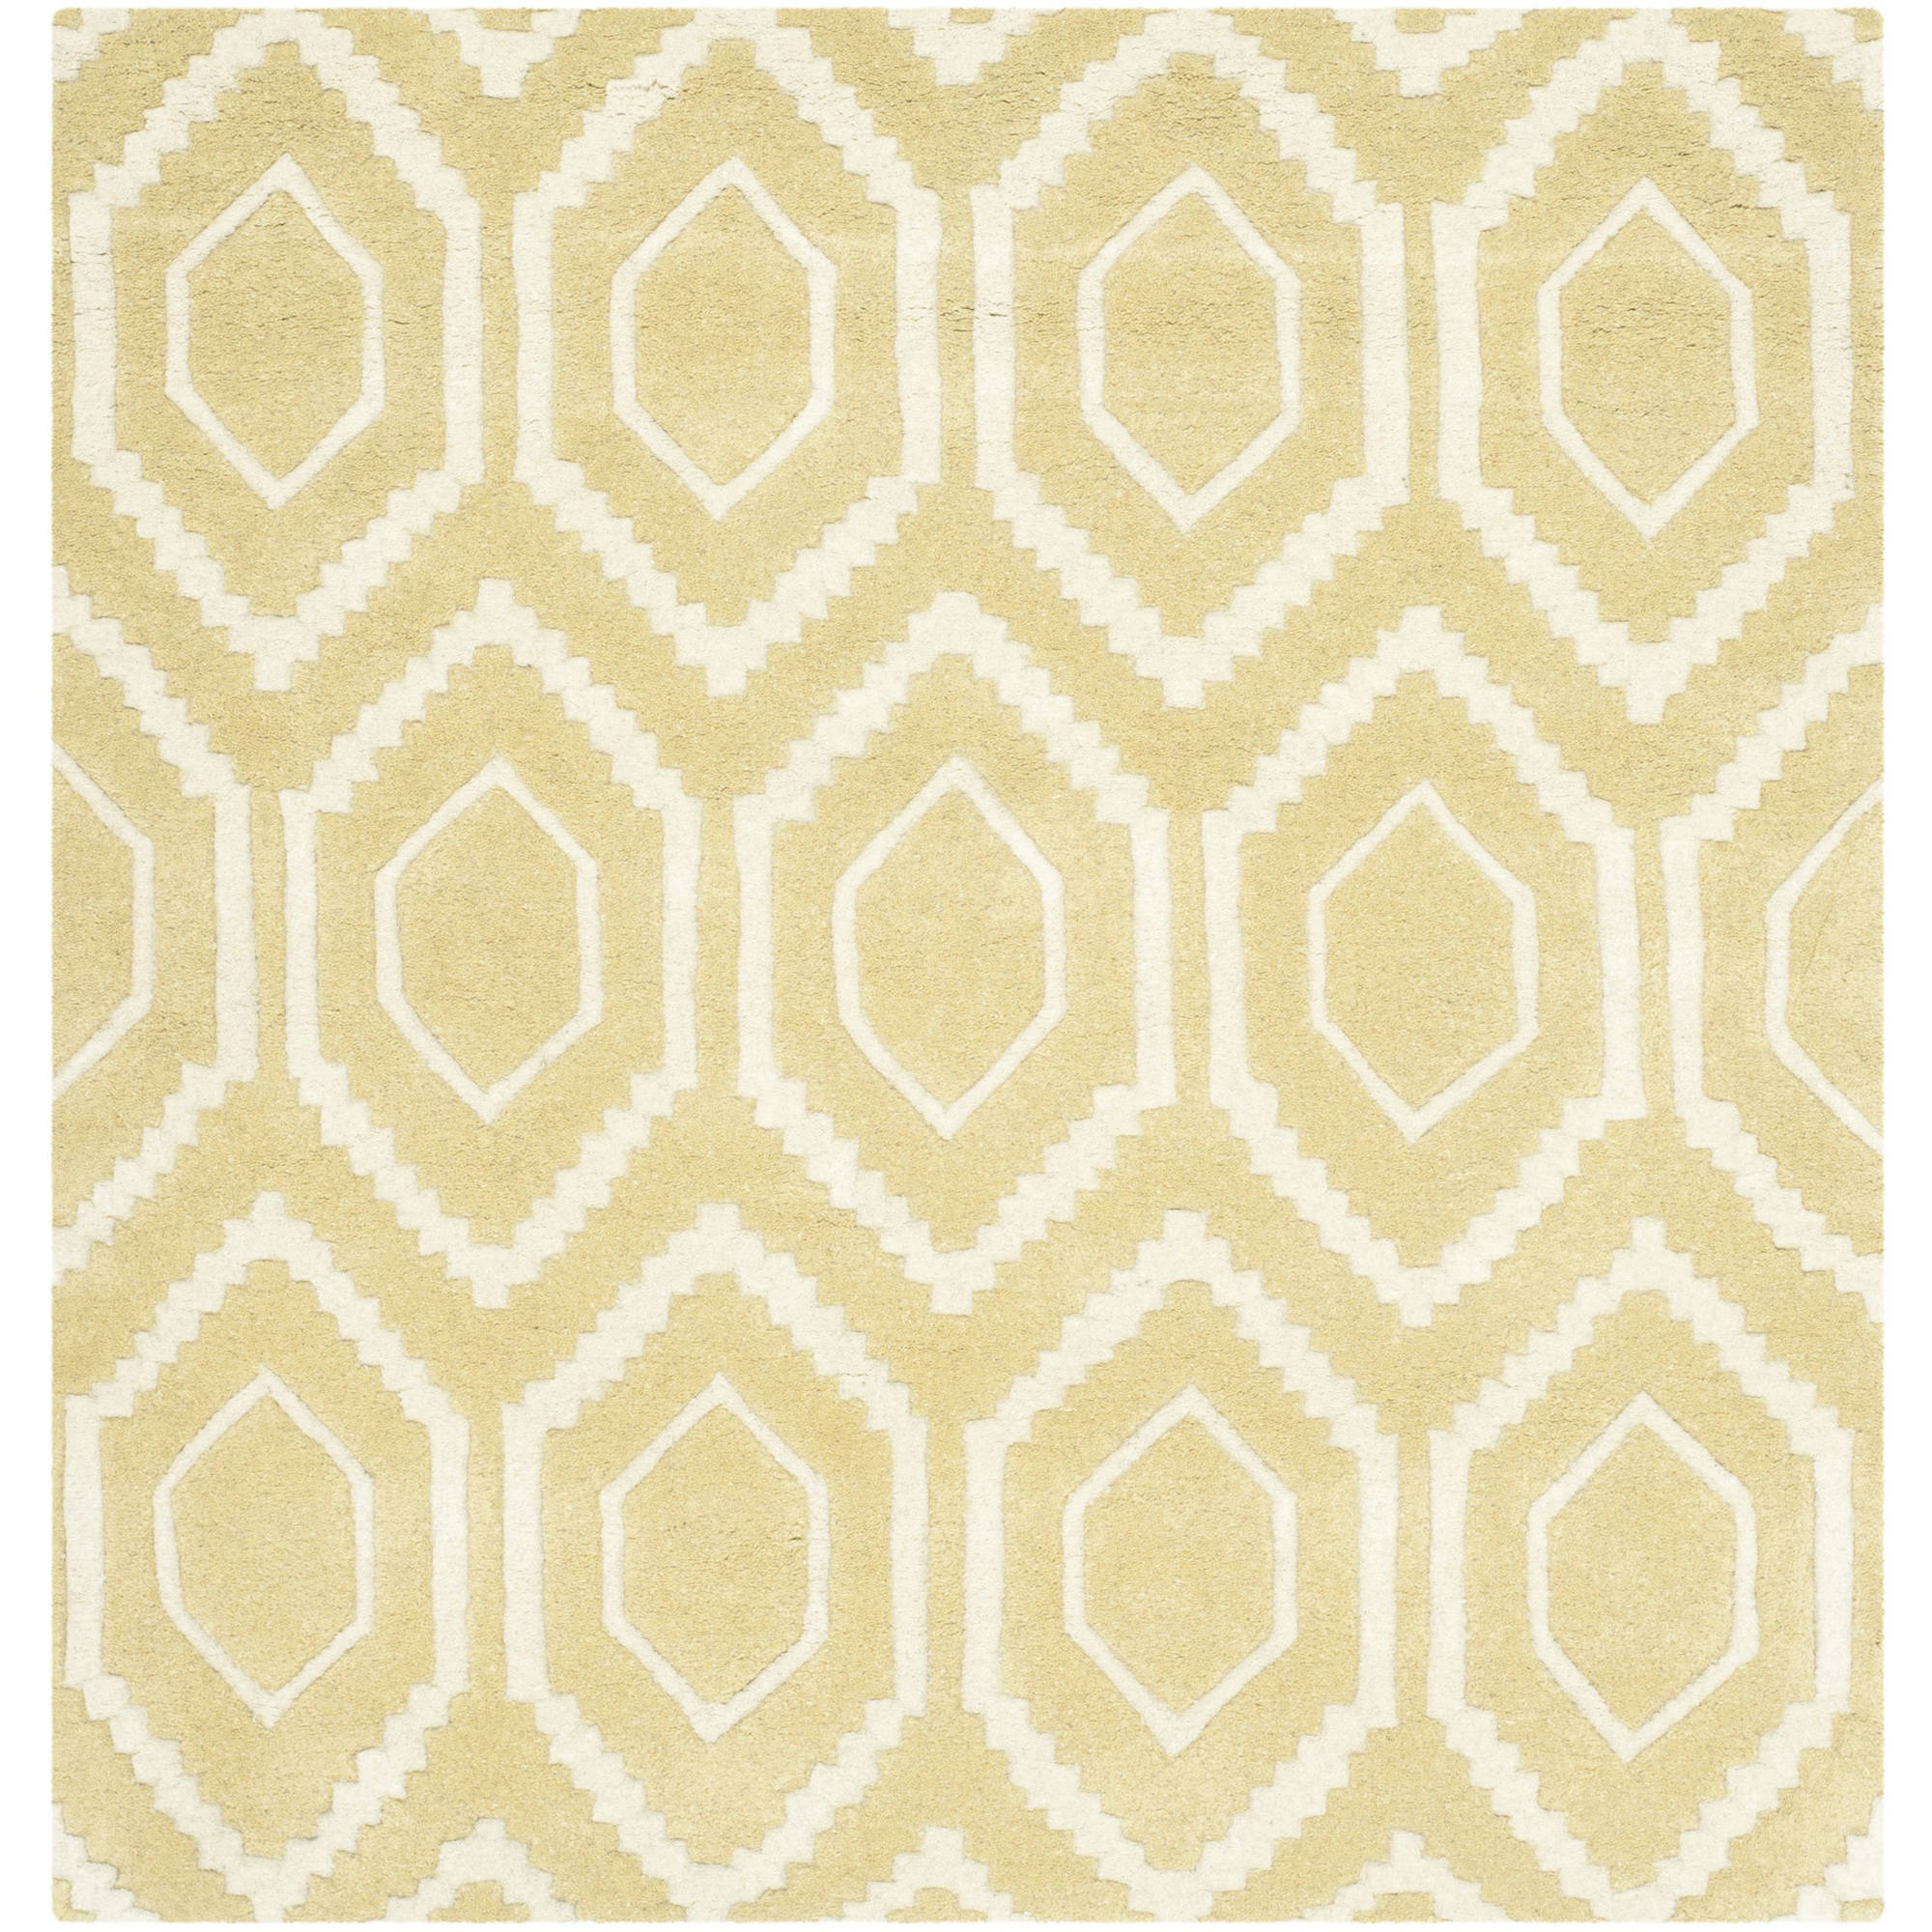 Safavieh Chatham Graham Geometric Area Rug or Runner